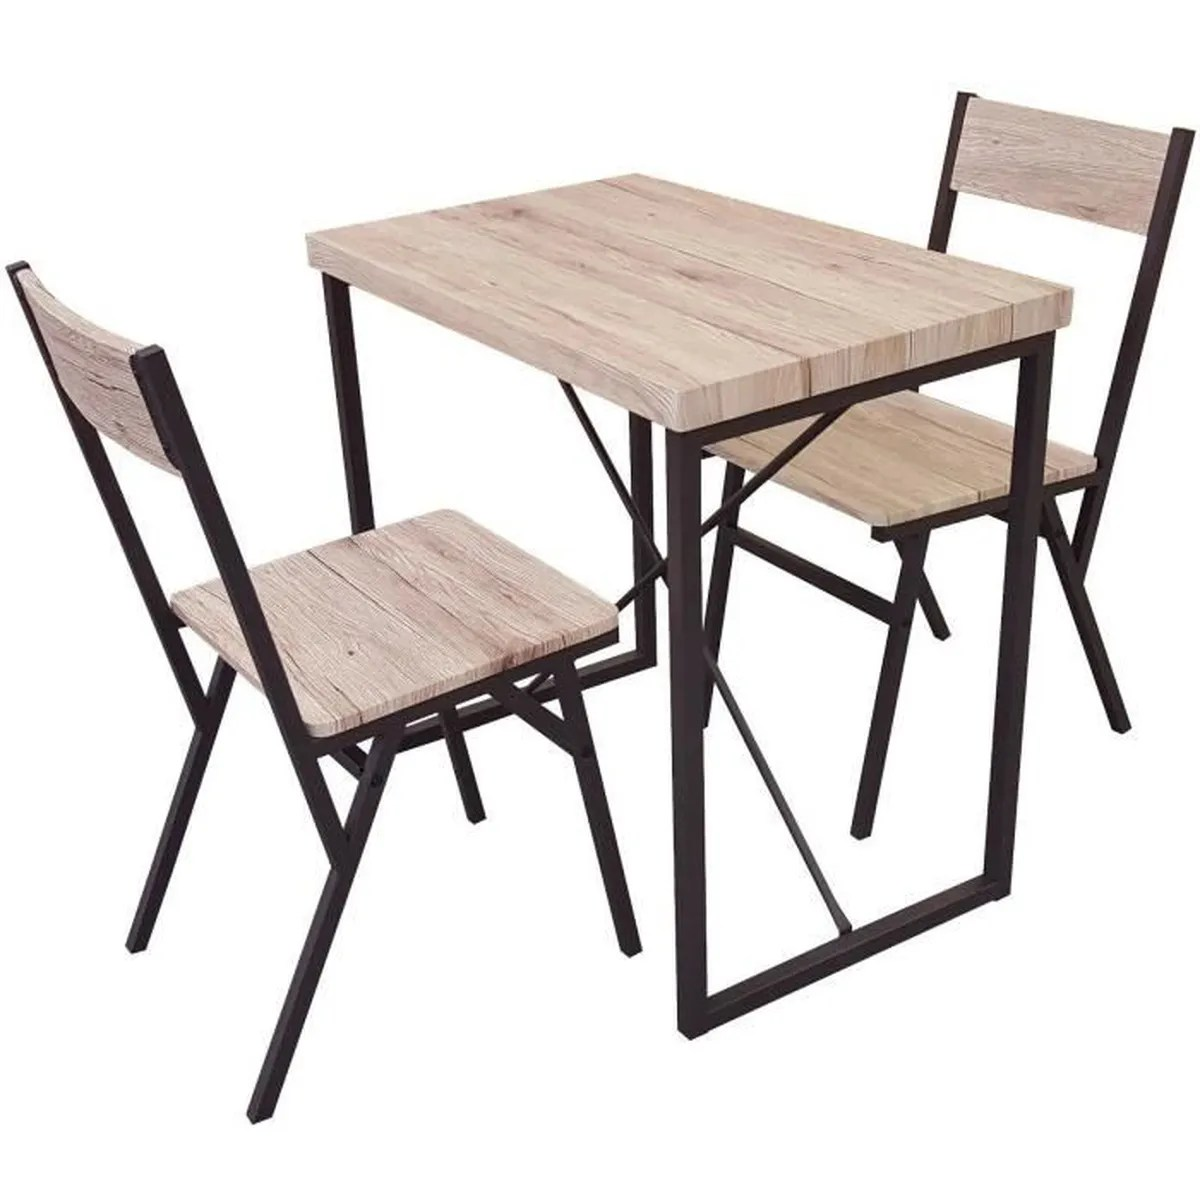 Table 2 Chaises Ensemble Table Restaurant Bar Appoint 2 Chaises Industriel Bois Metal Desserte Loft